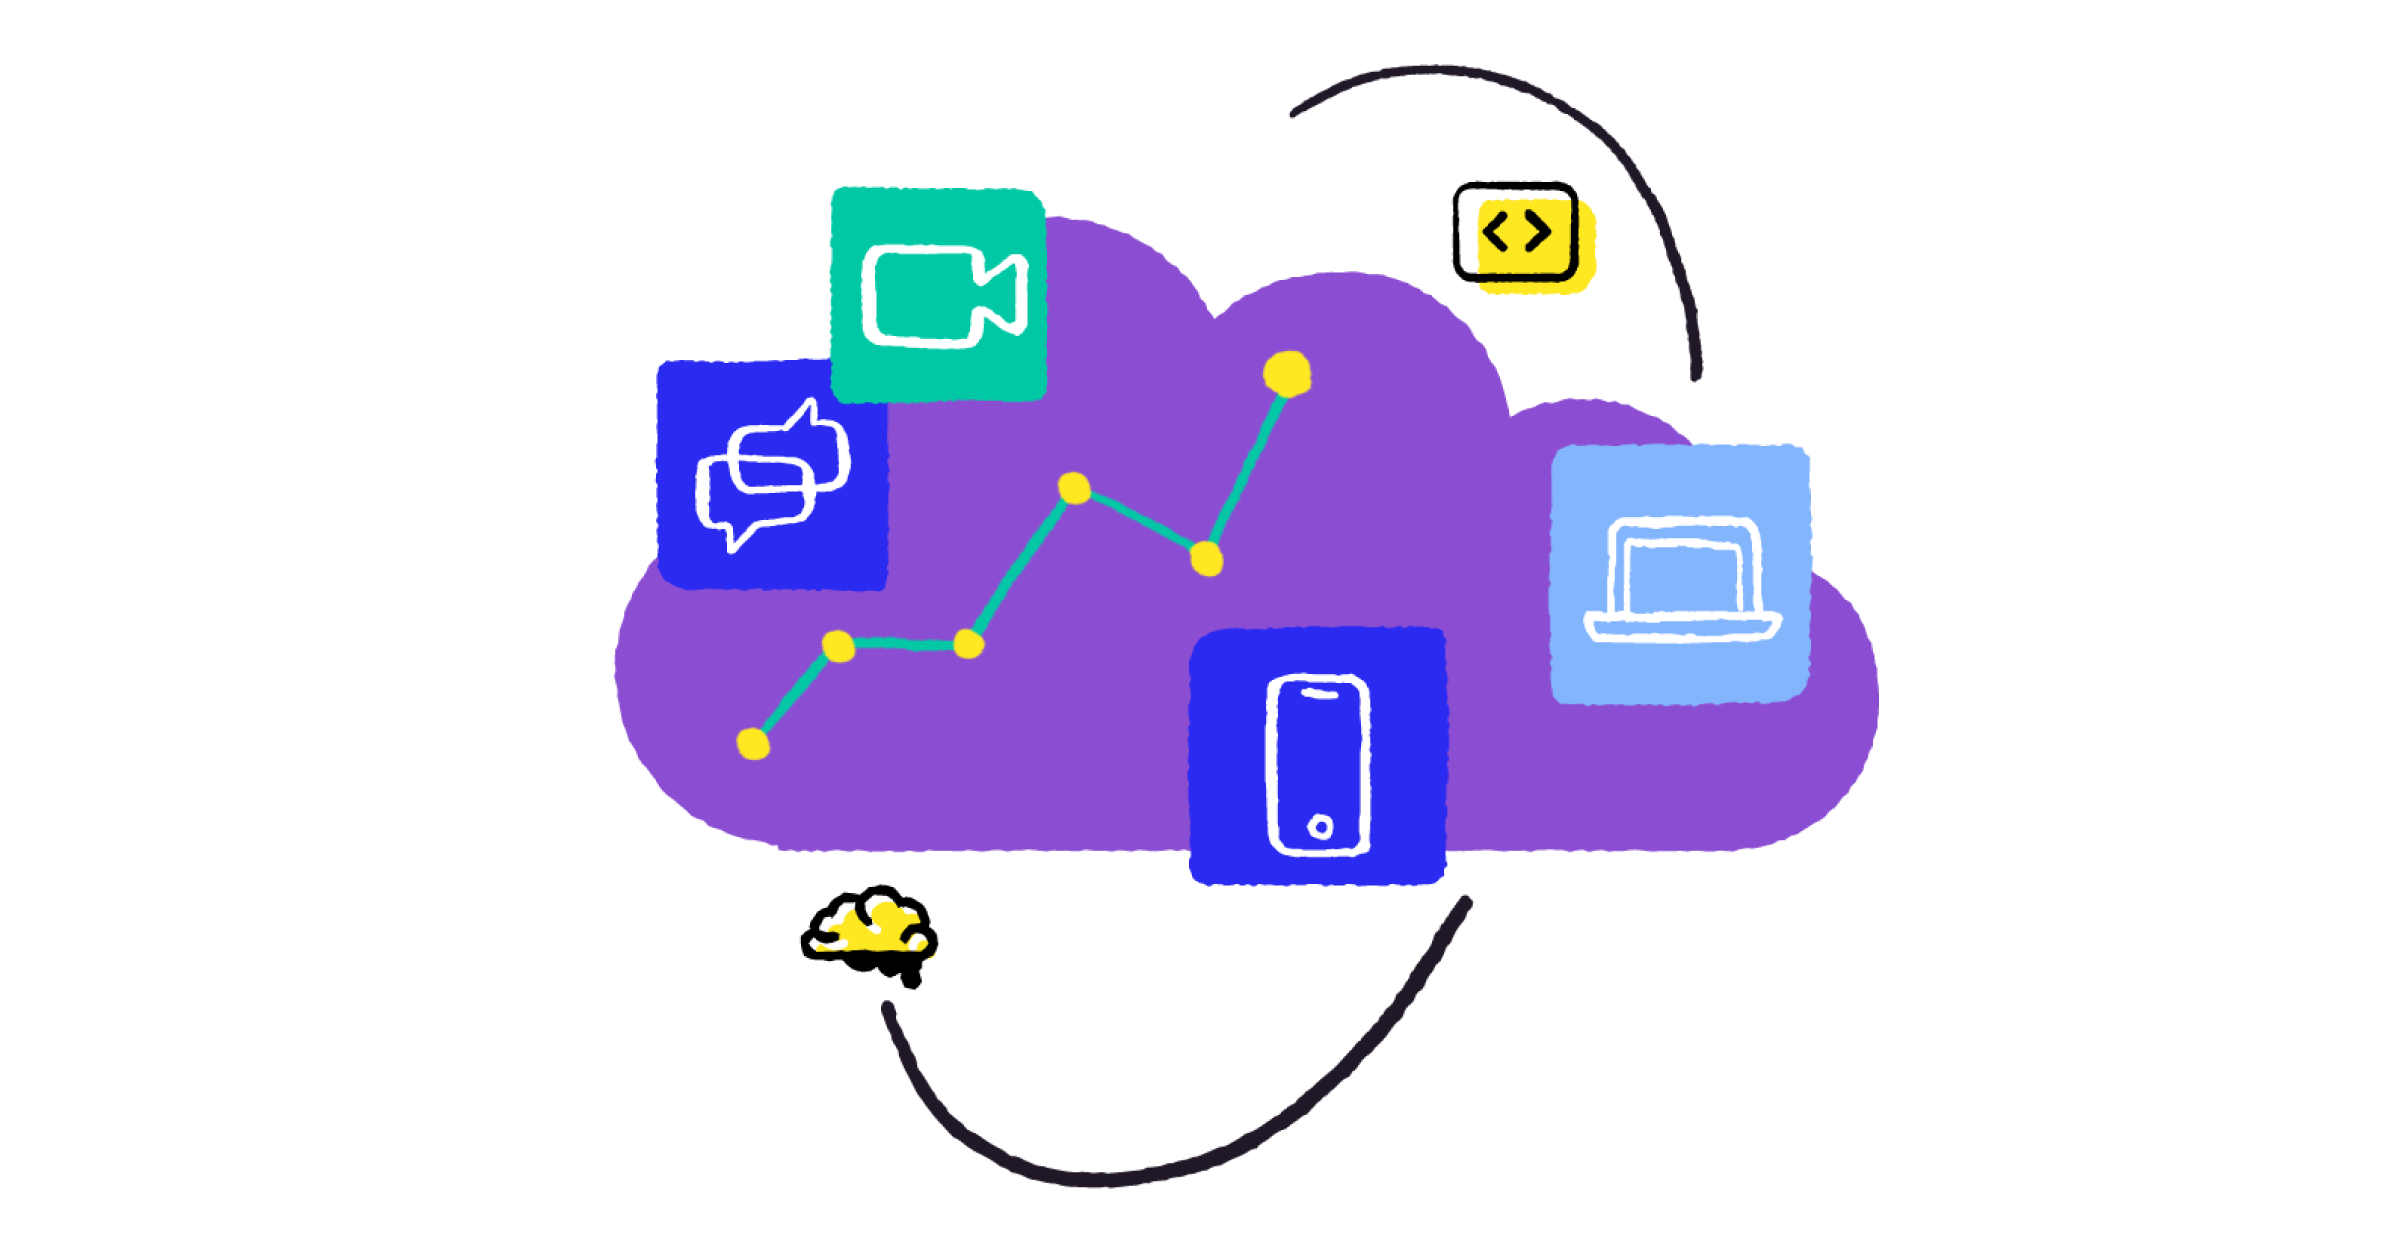 Channelless: Throwing Out the Omnichannel Rulebook